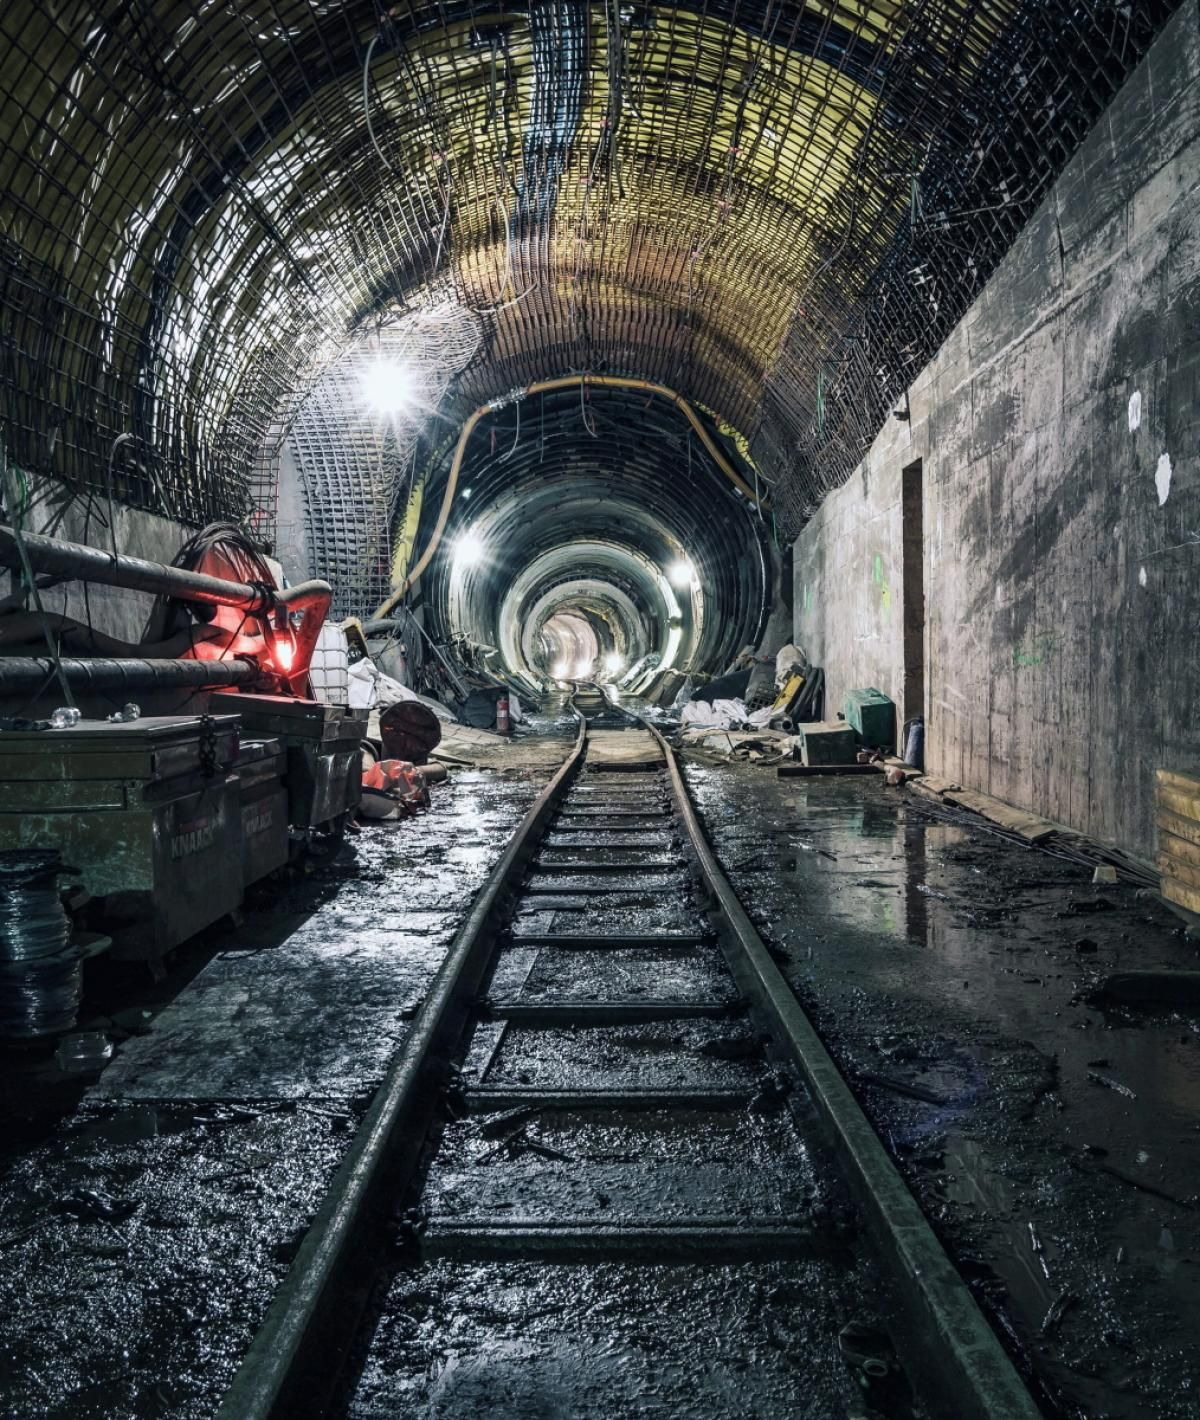 Photographer 'Dark.Cyanide' Captures Abandoned NYC Subways